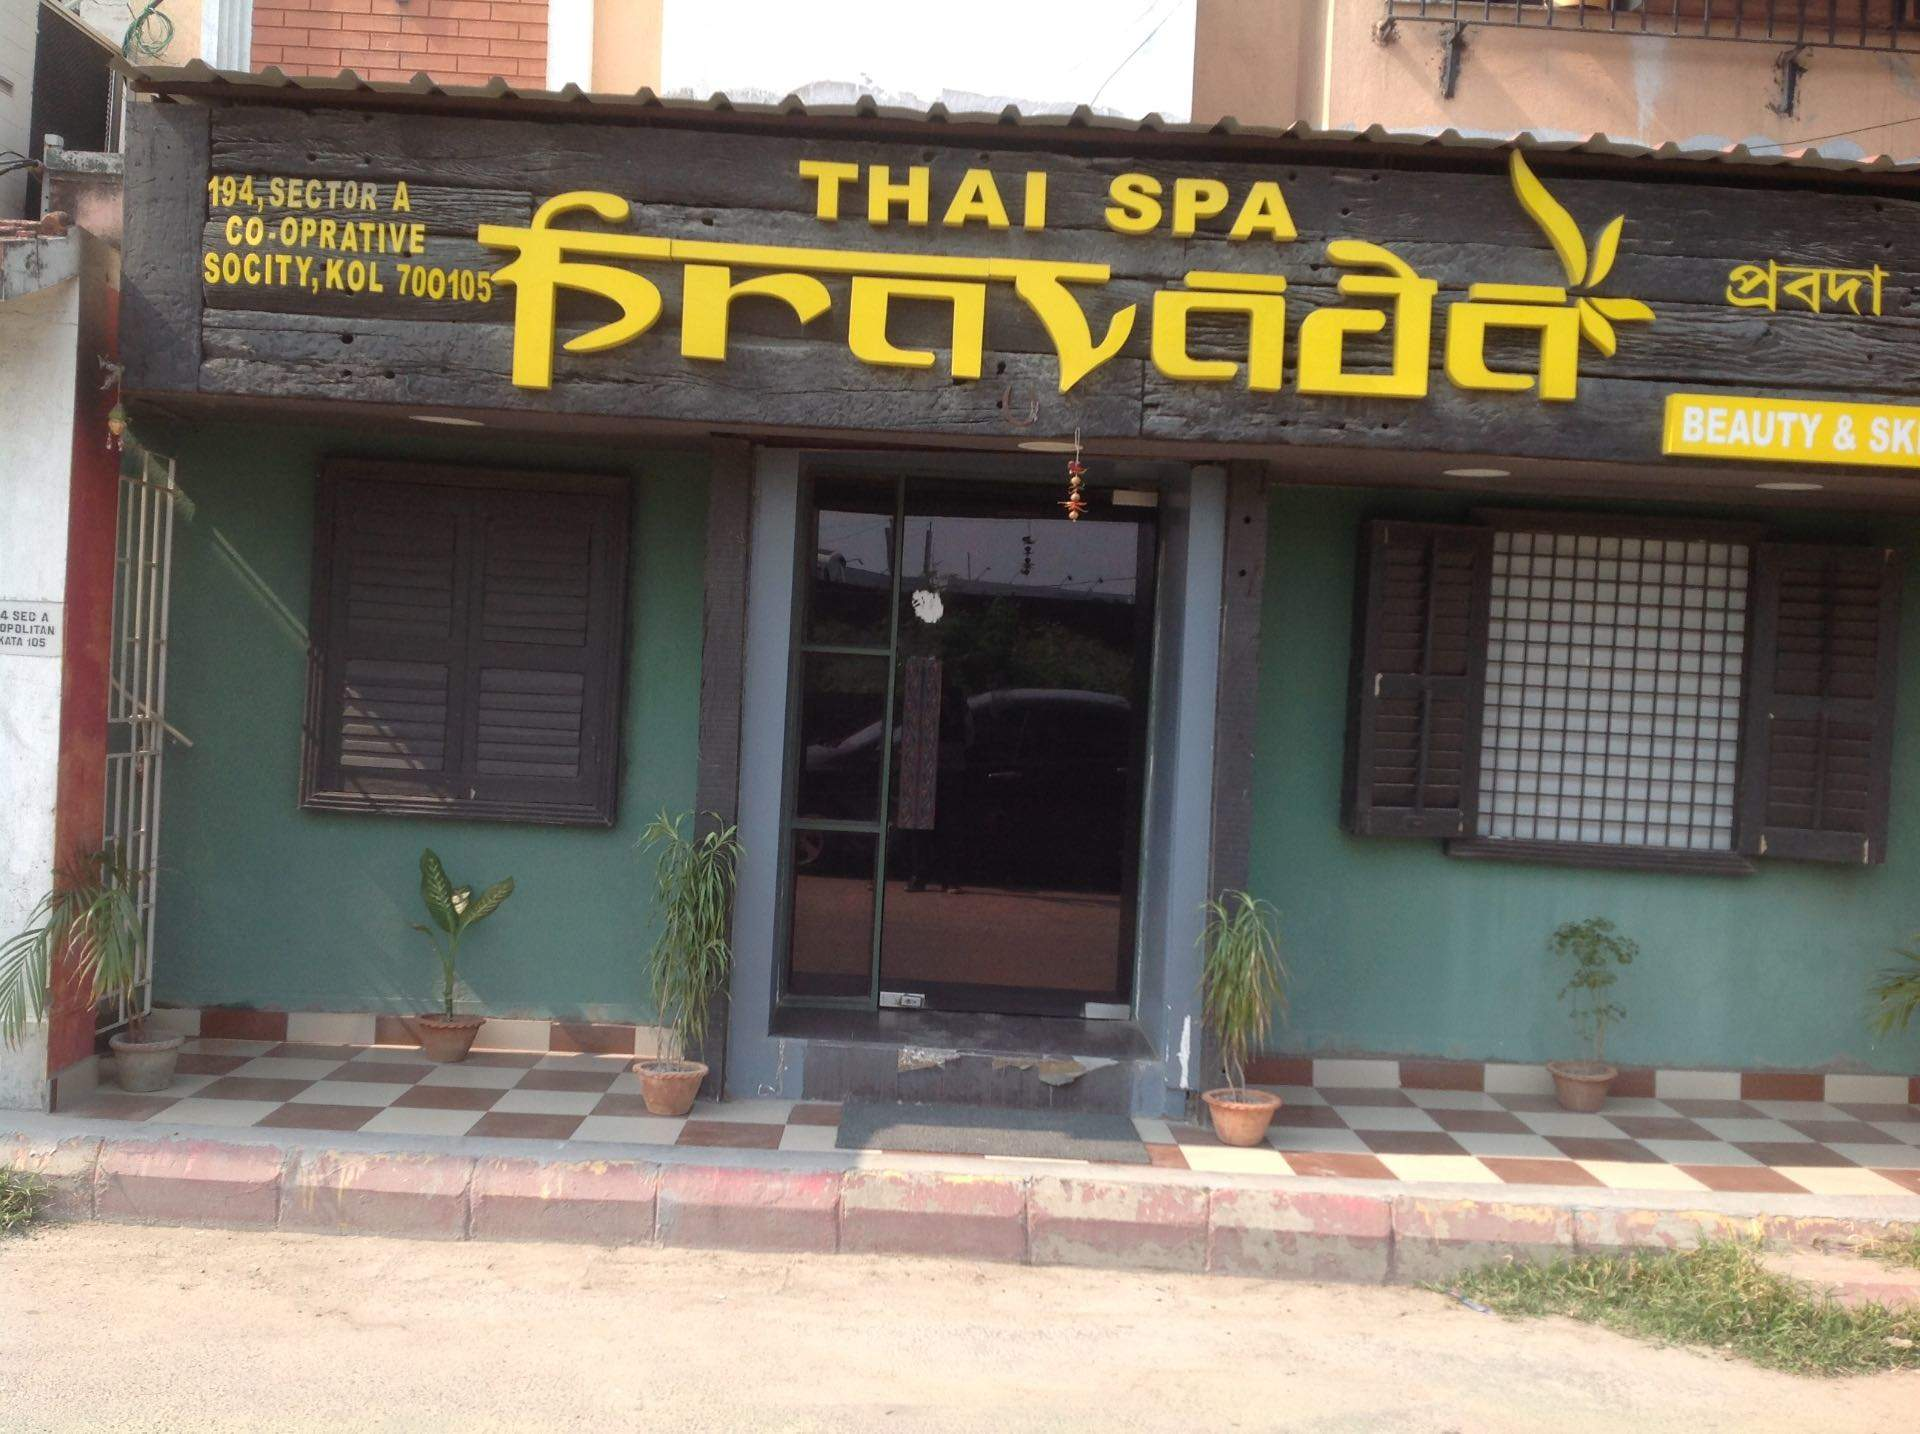 Nude women found offering erotic massage at Ho Chi Minh